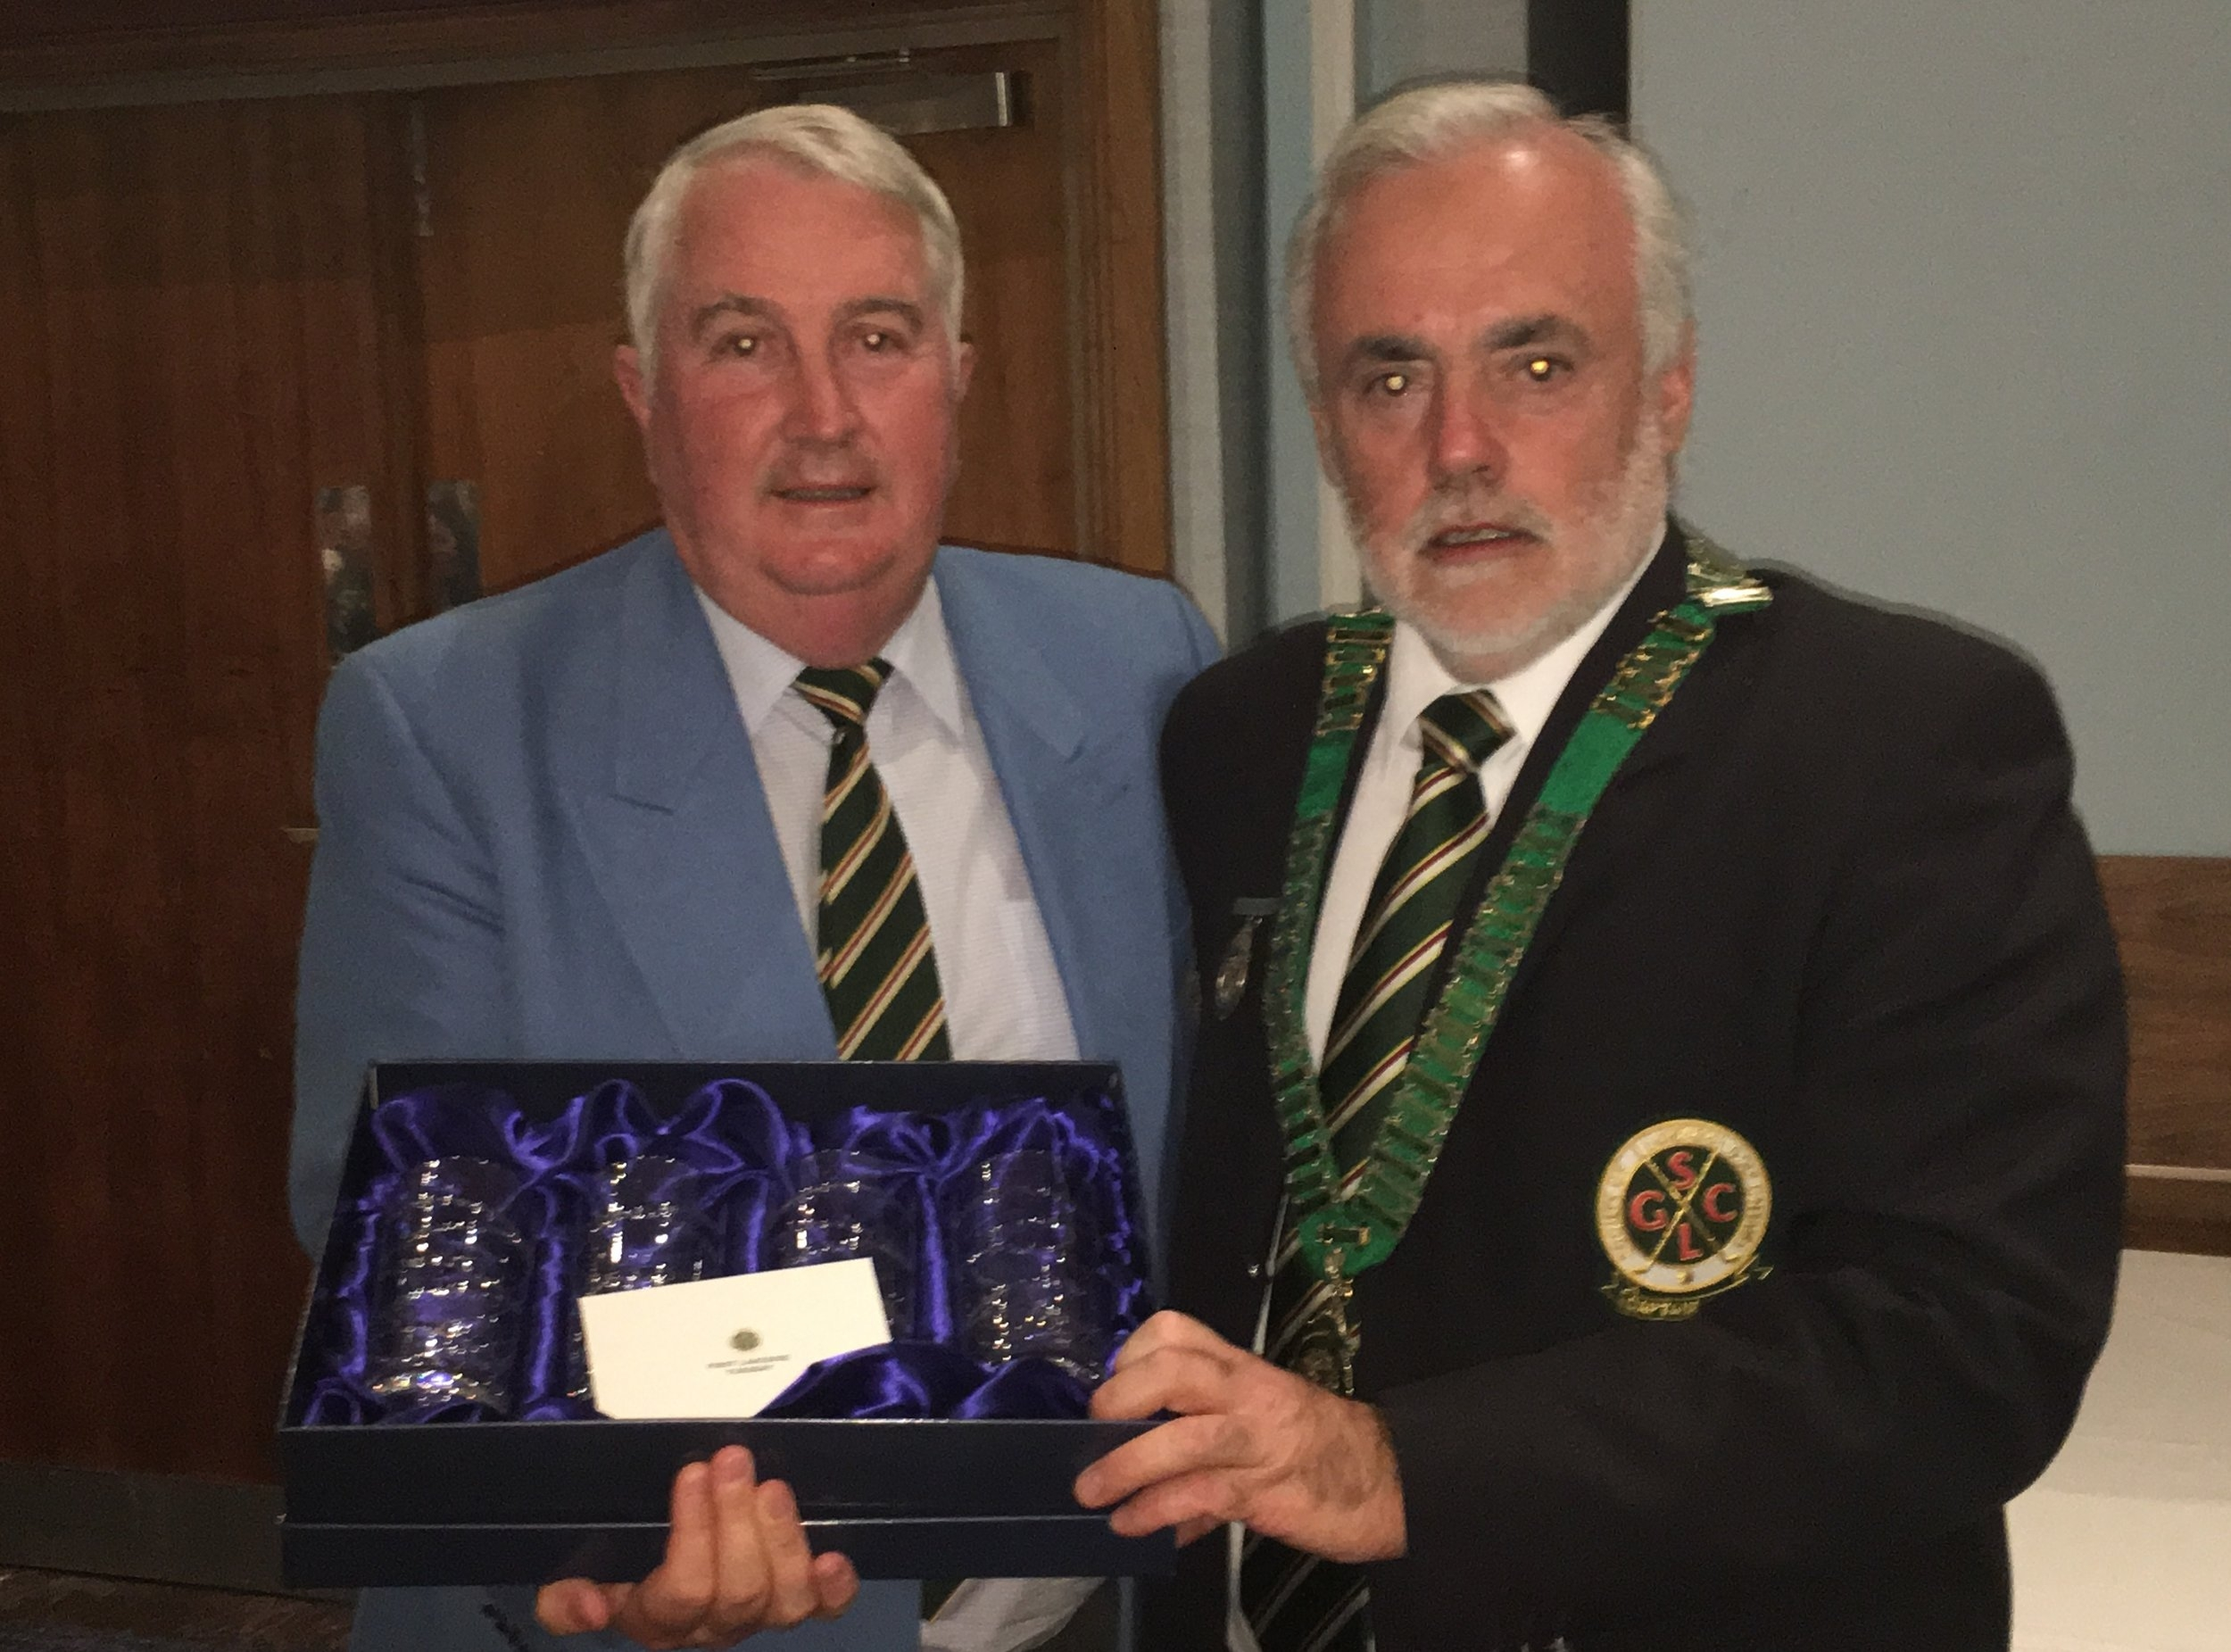 Frank Moloney Bexleyheath Golf Club receiving his prize as winner at the Lakes Course on Tuesday